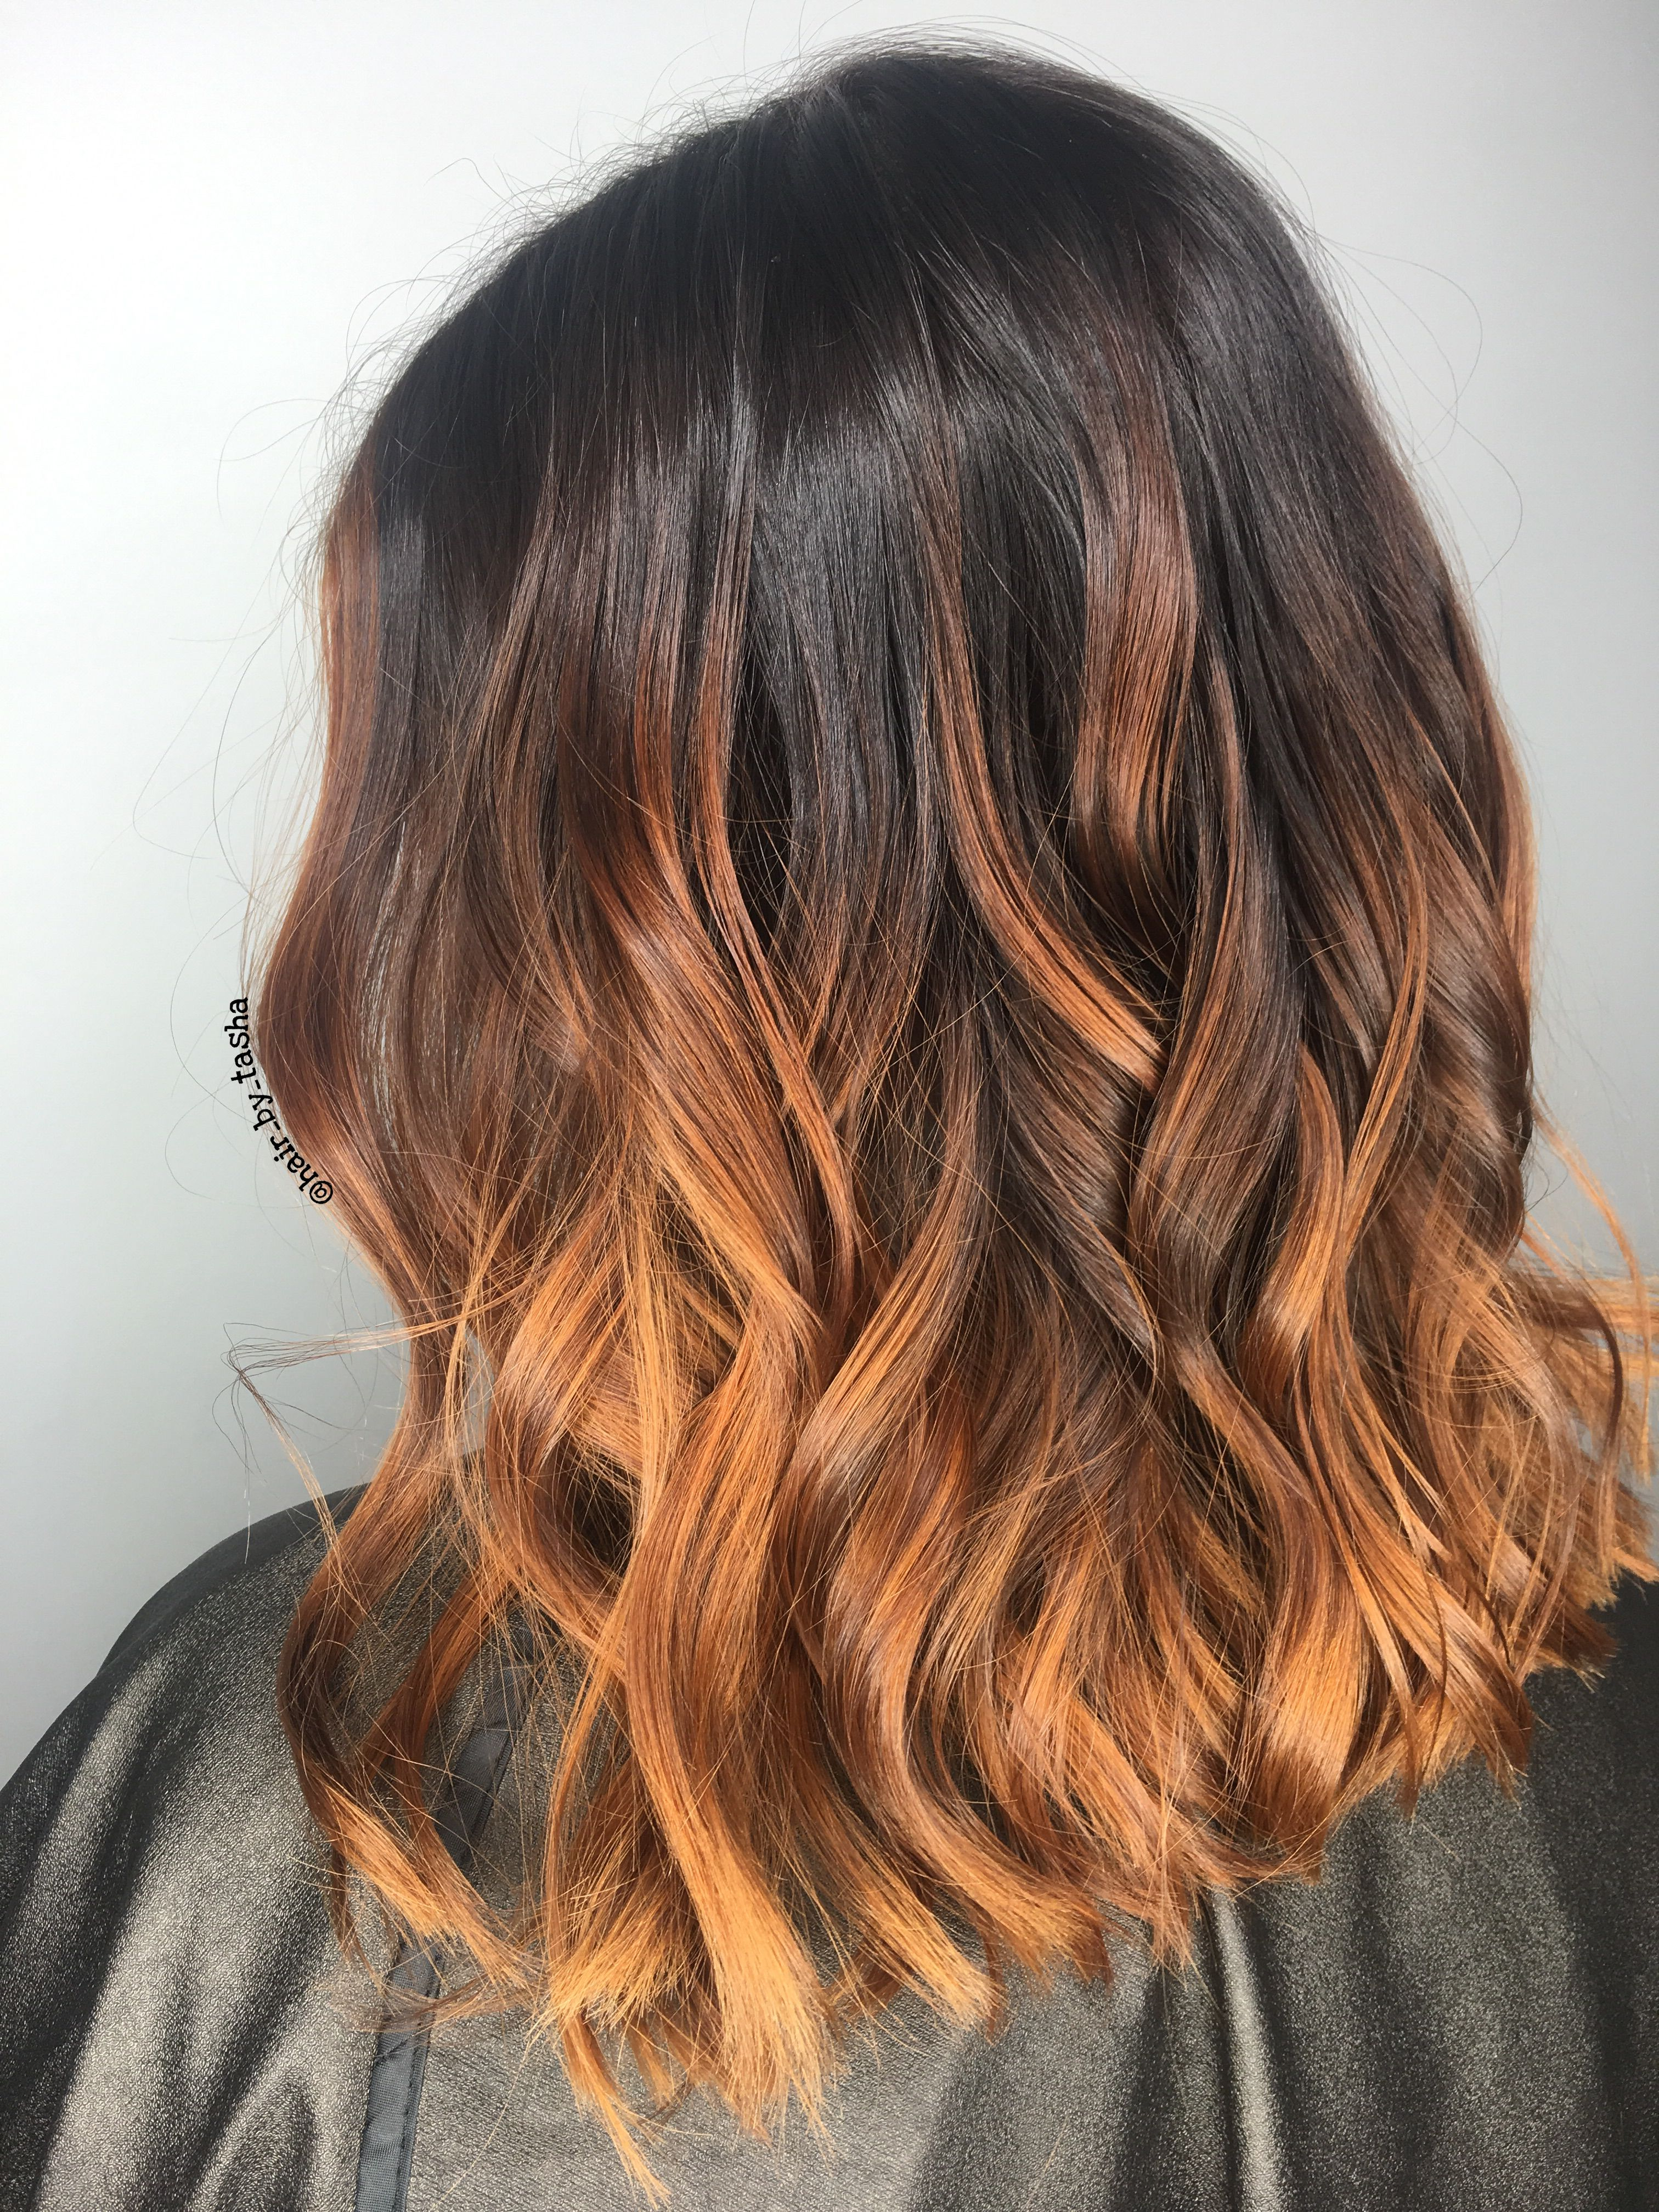 Discussion on this topic: Chic Color Ideas for Auburn Hair, chic-color-ideas-for-auburn-hair/